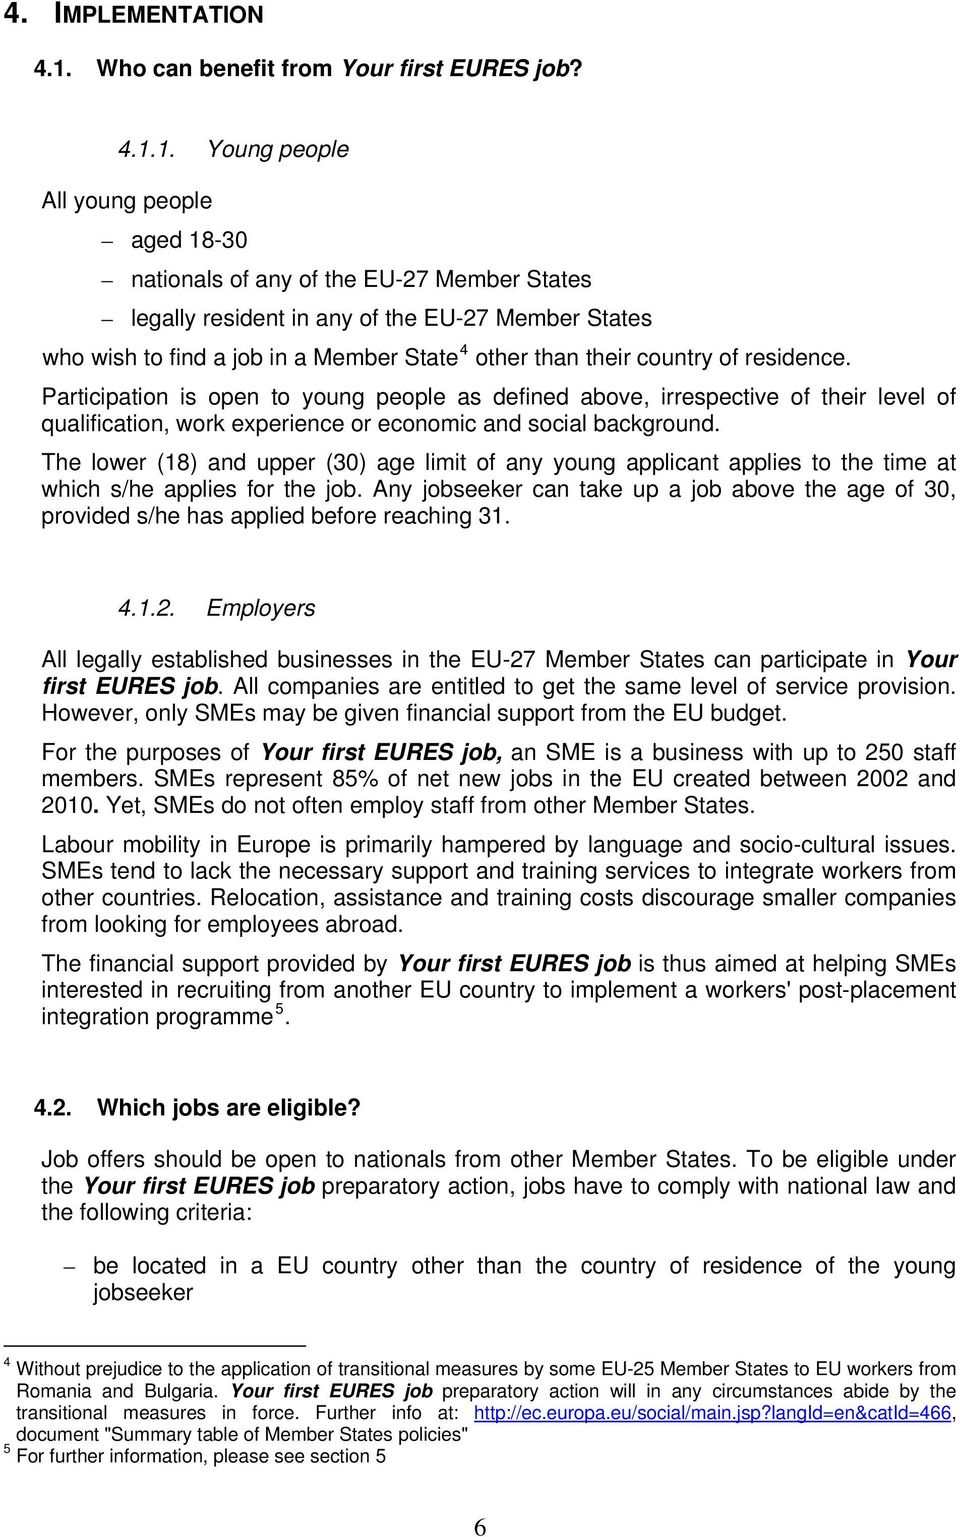 1. Young people All young people aged 18-30 nationals of any of the EU-27 Member States legally resident in any of the EU-27 Member States who wish to find a job in a Member State 4 other than their